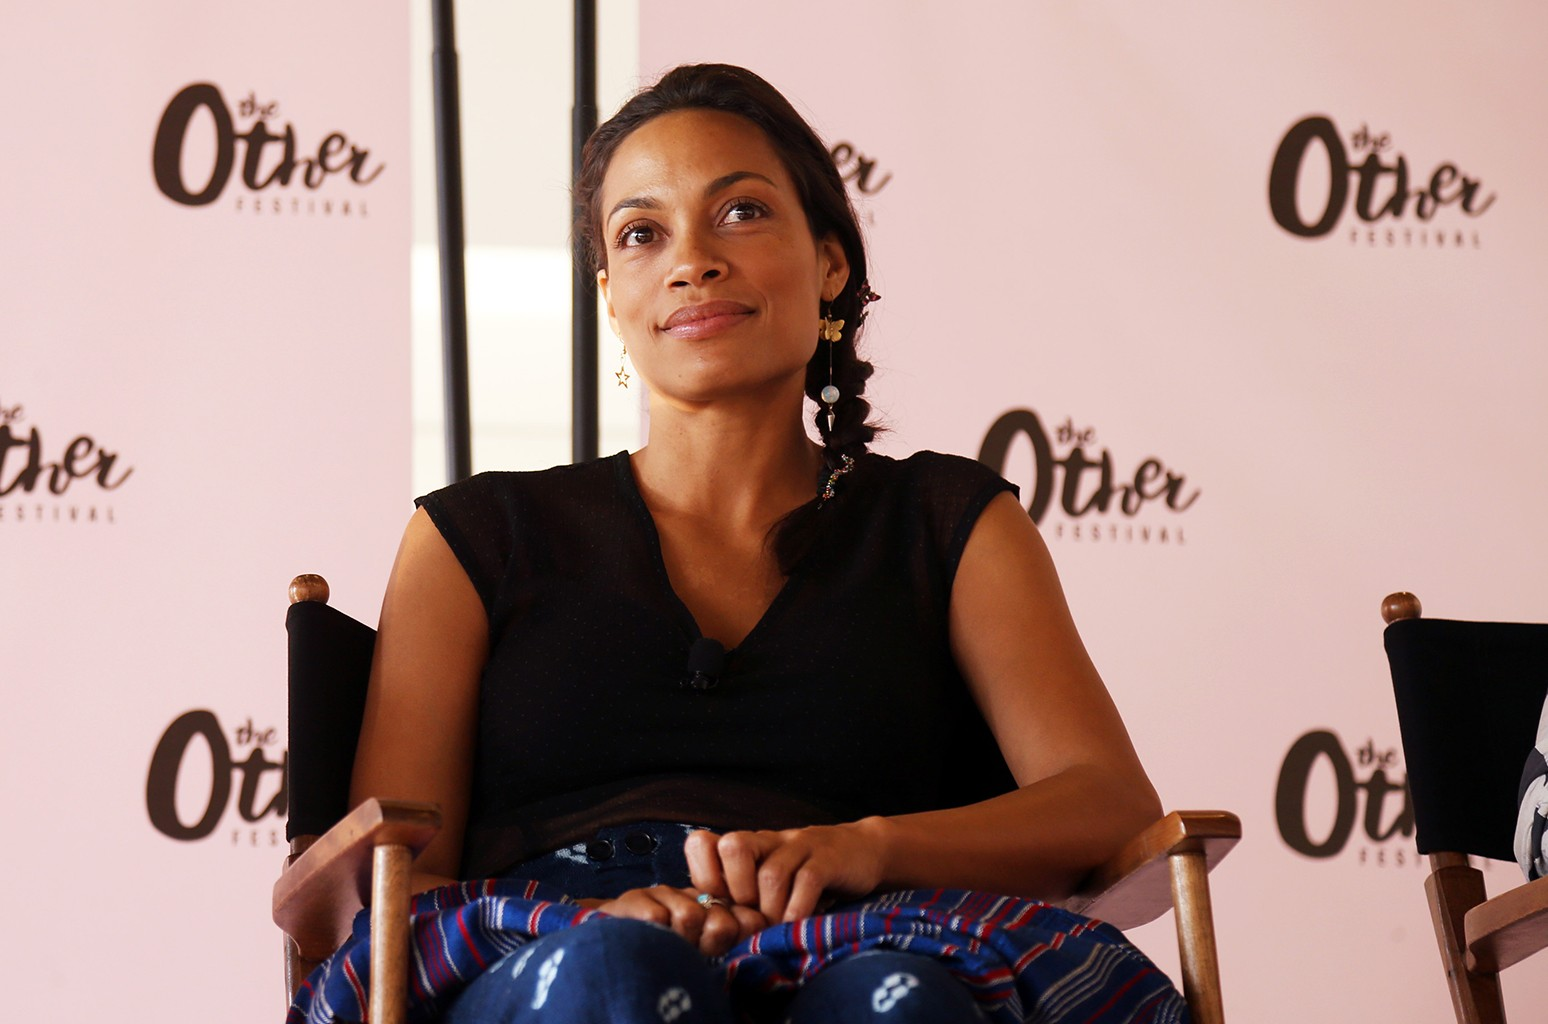 Rosario Dawson appears during The Other Festival